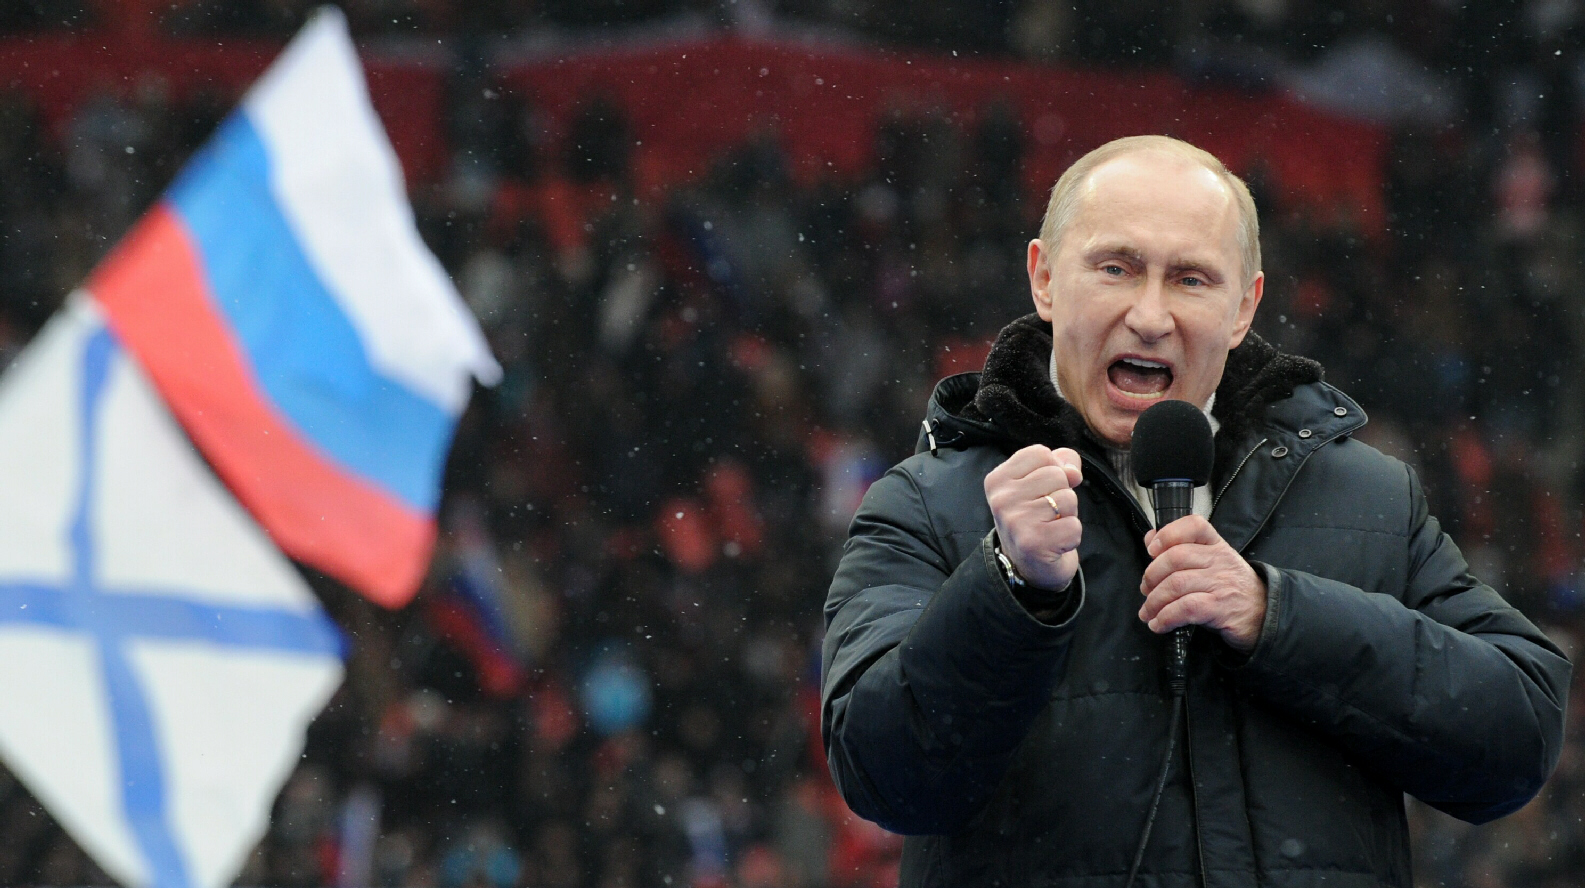 Russian President Vladimir Putin threatens World War III and total thermonuclear holocaust